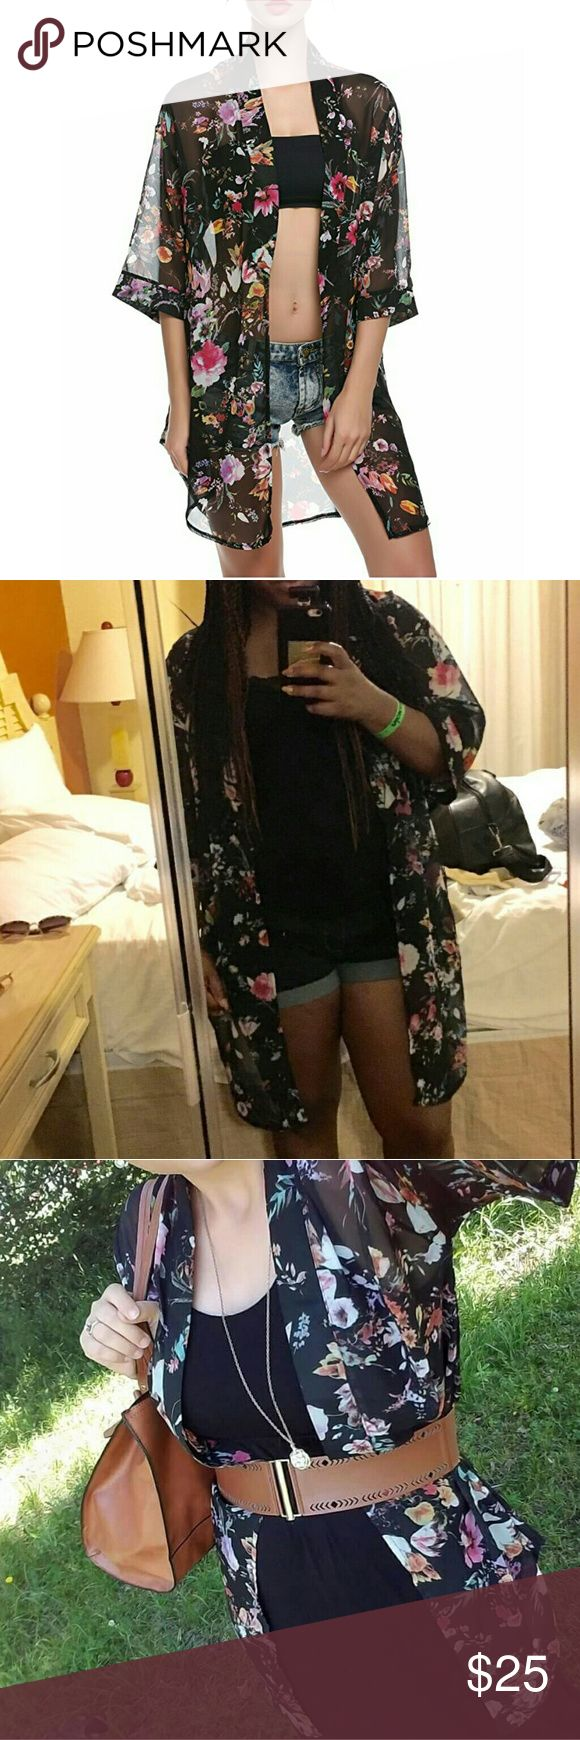 Black Chiffon Floral Print Kimono Garment Care: Hand-wash and Machine-wash Material: Chiffon Kimonos are Asian sizes!! Please MEASURE YOURSELF BEFORE ORDERING :)  Asian XL = US Medium  Shoulder 21.8 Sleeve 12.5 Bust 43.7 Max length 34.7 Tops